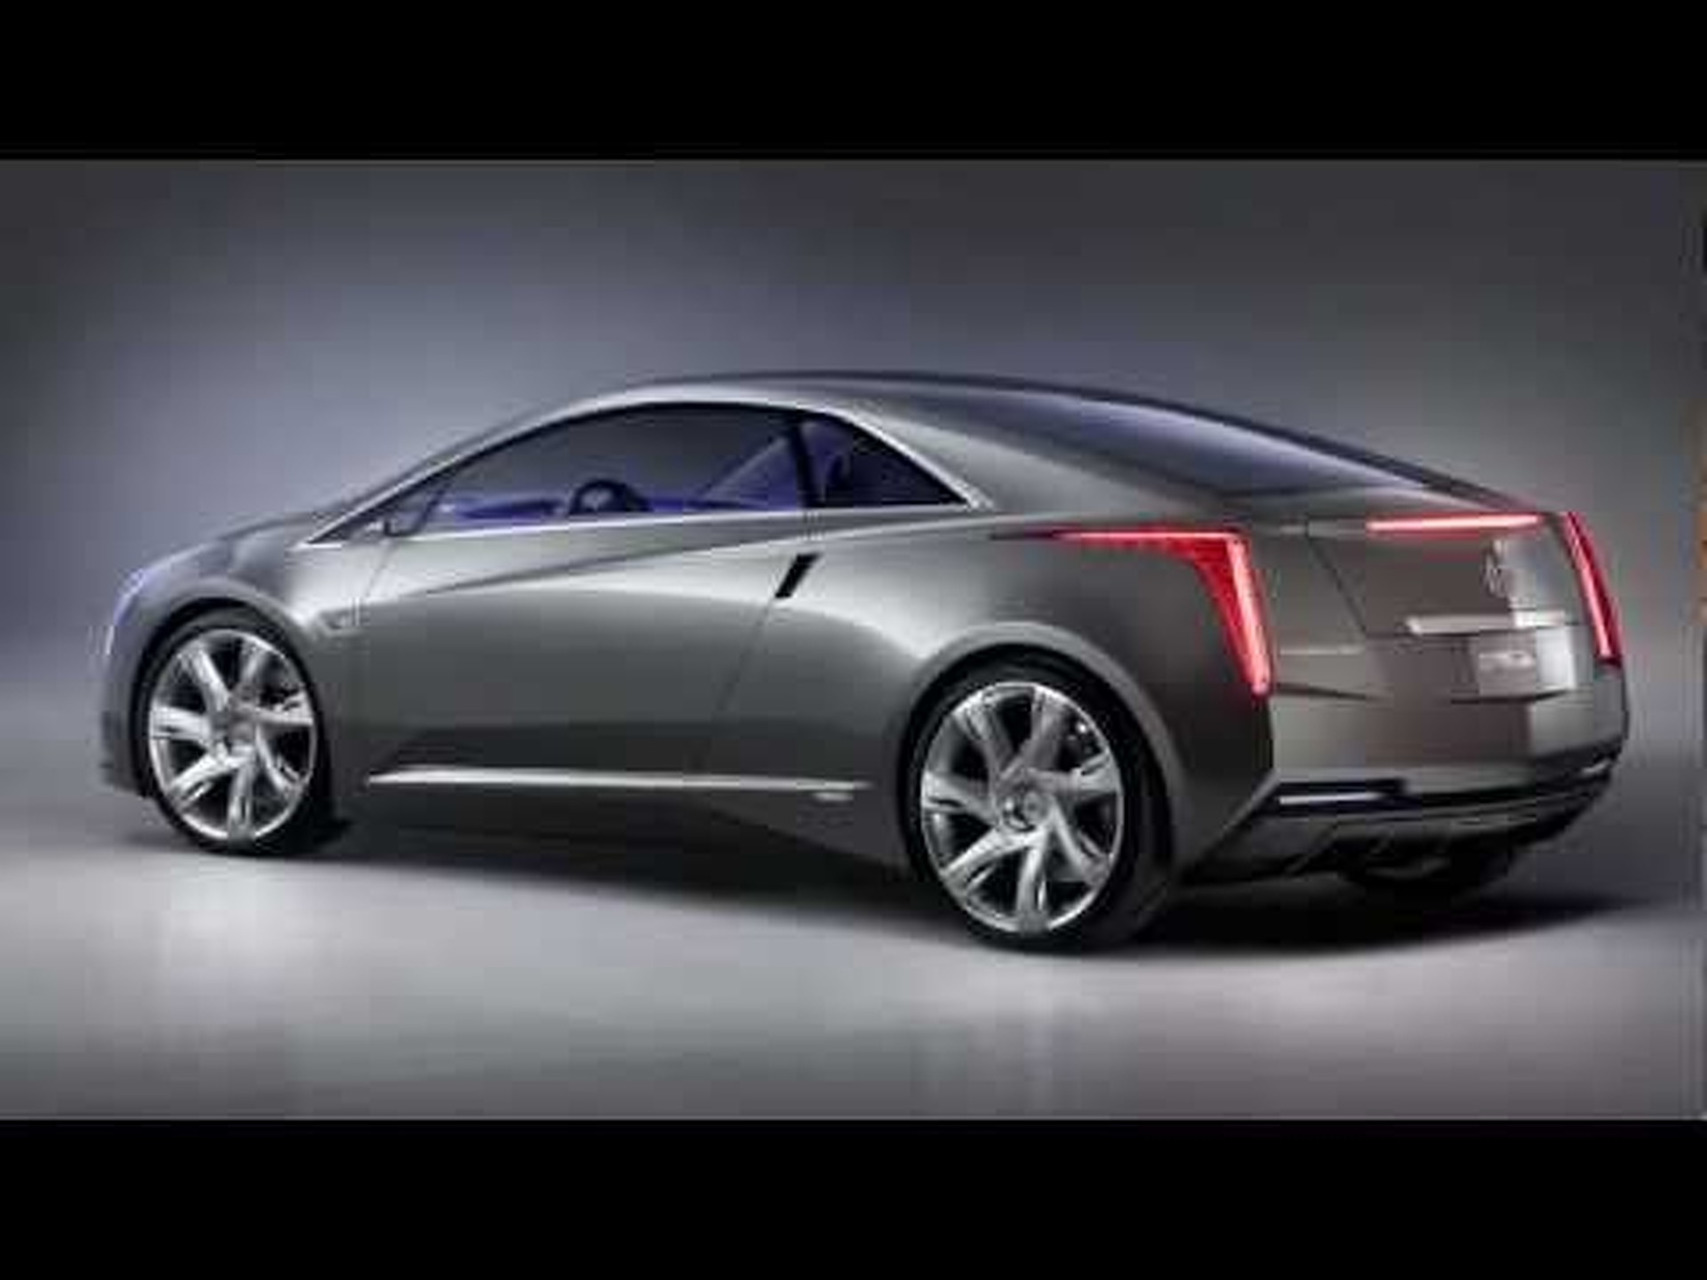 New Cadillac ELR Extended-Range Electric Car